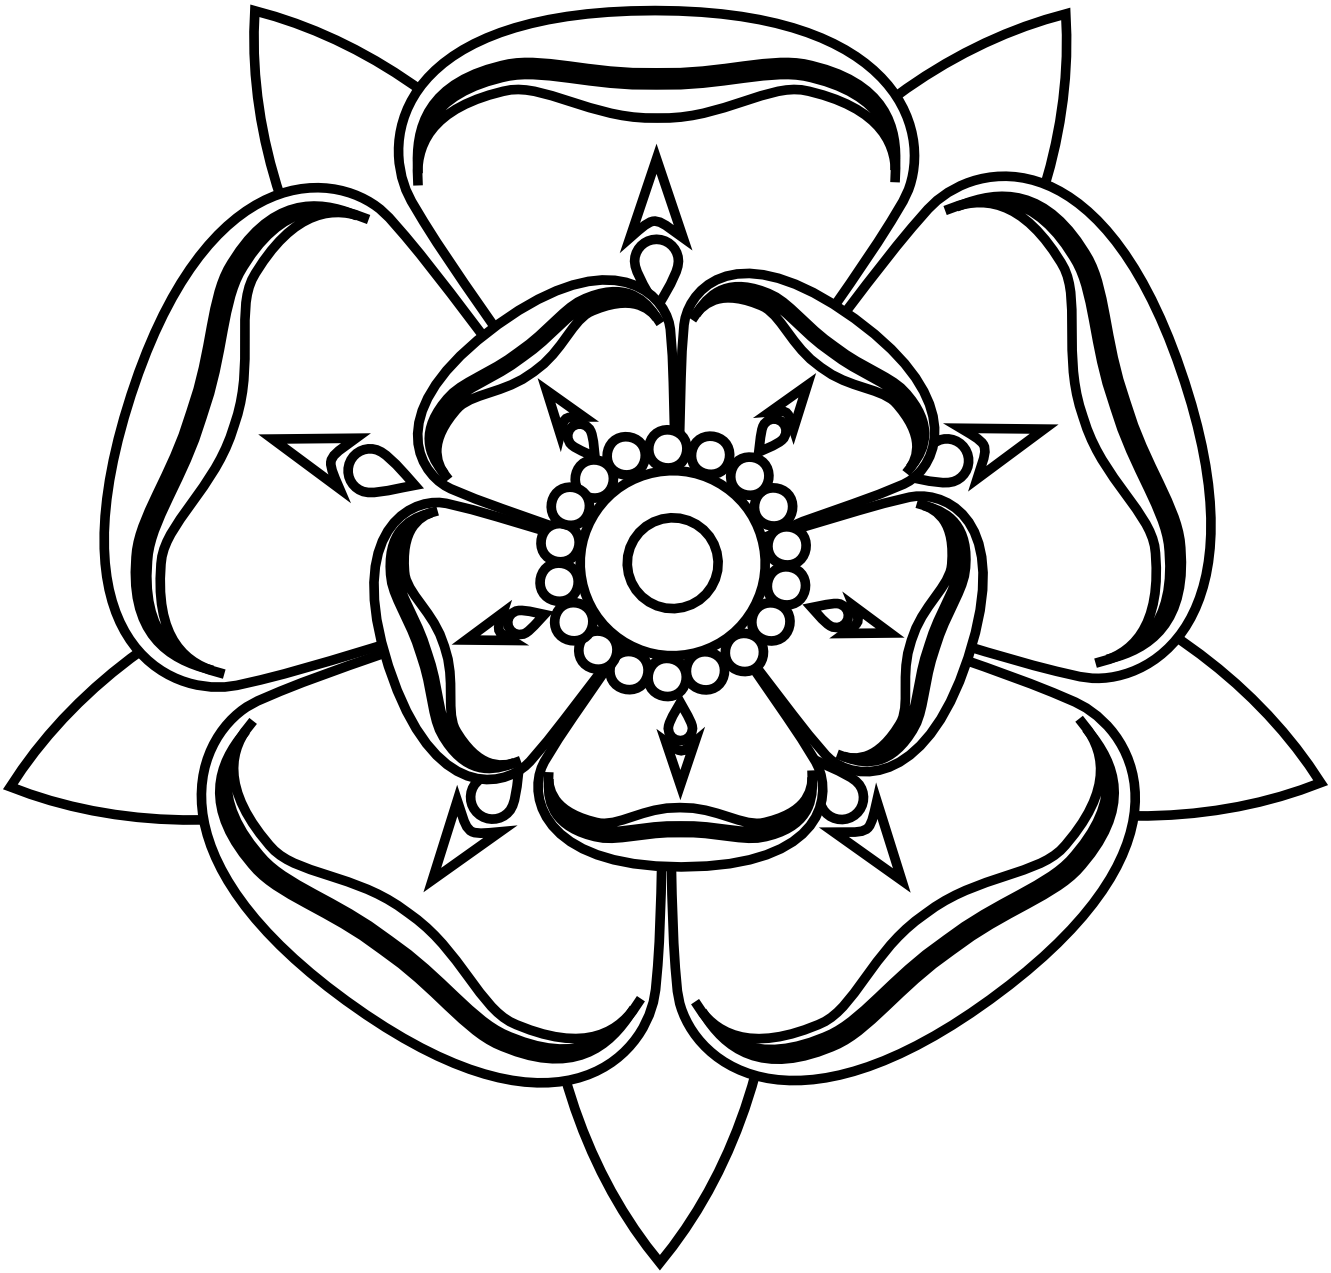 rose%20black%20and%20white%20outline | Free Floral, Victorian, and ...